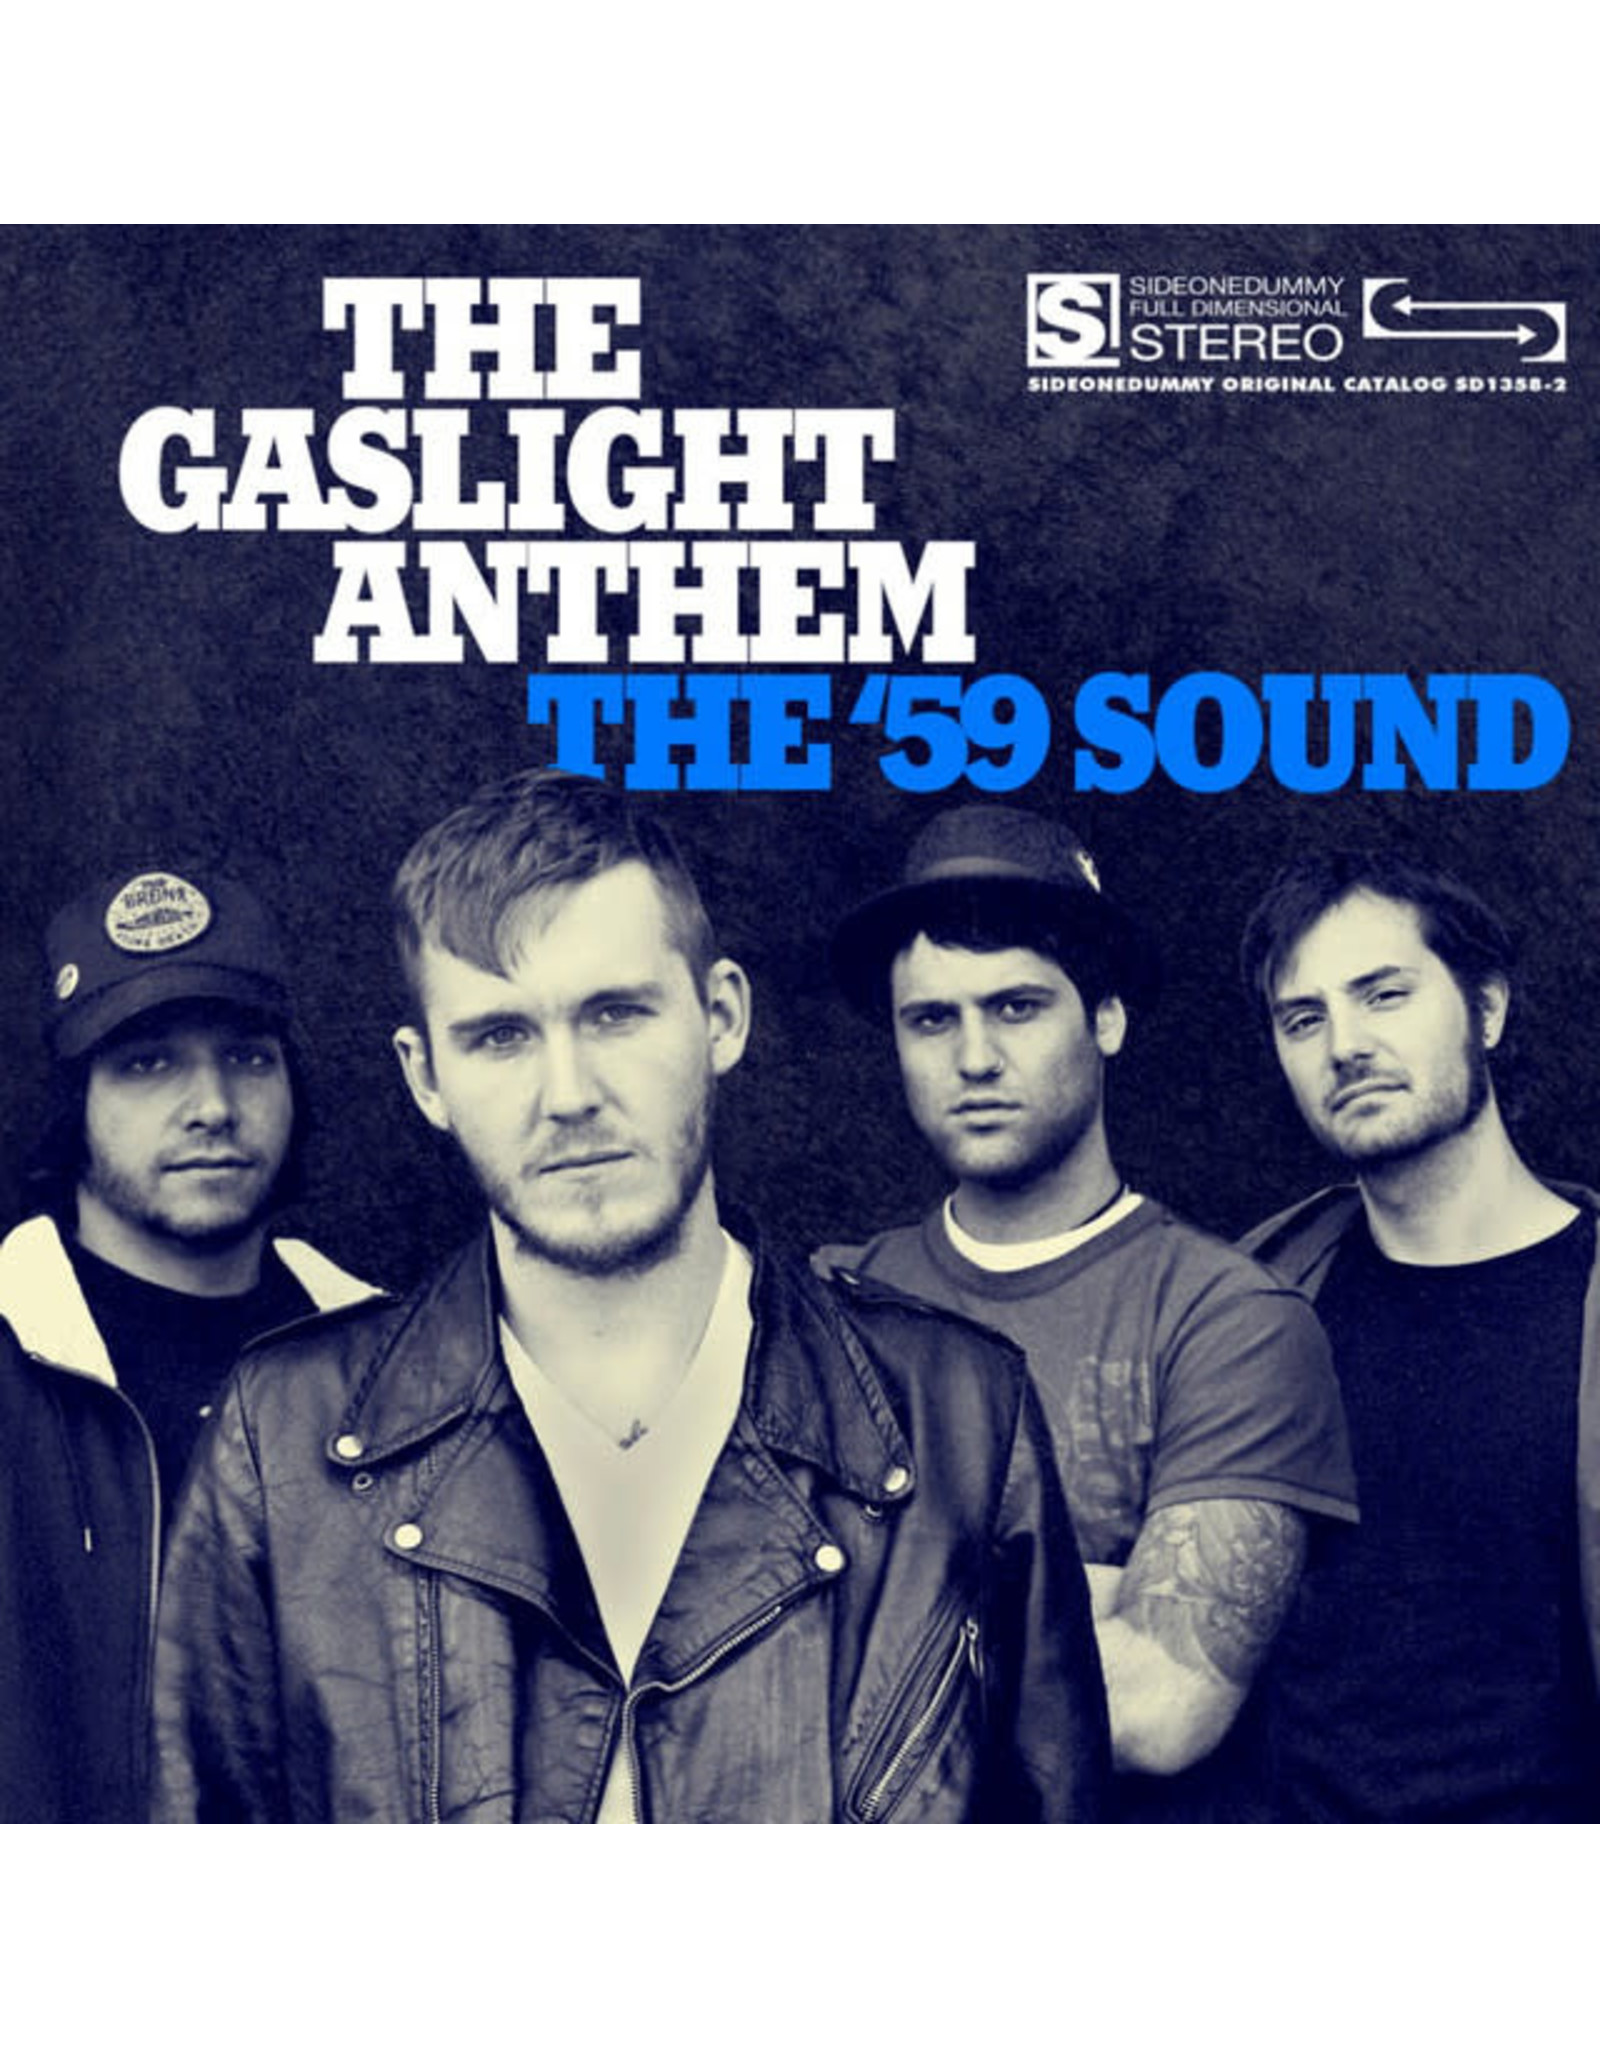 Vinyl Gaslight Anthem - The '59 Sounds